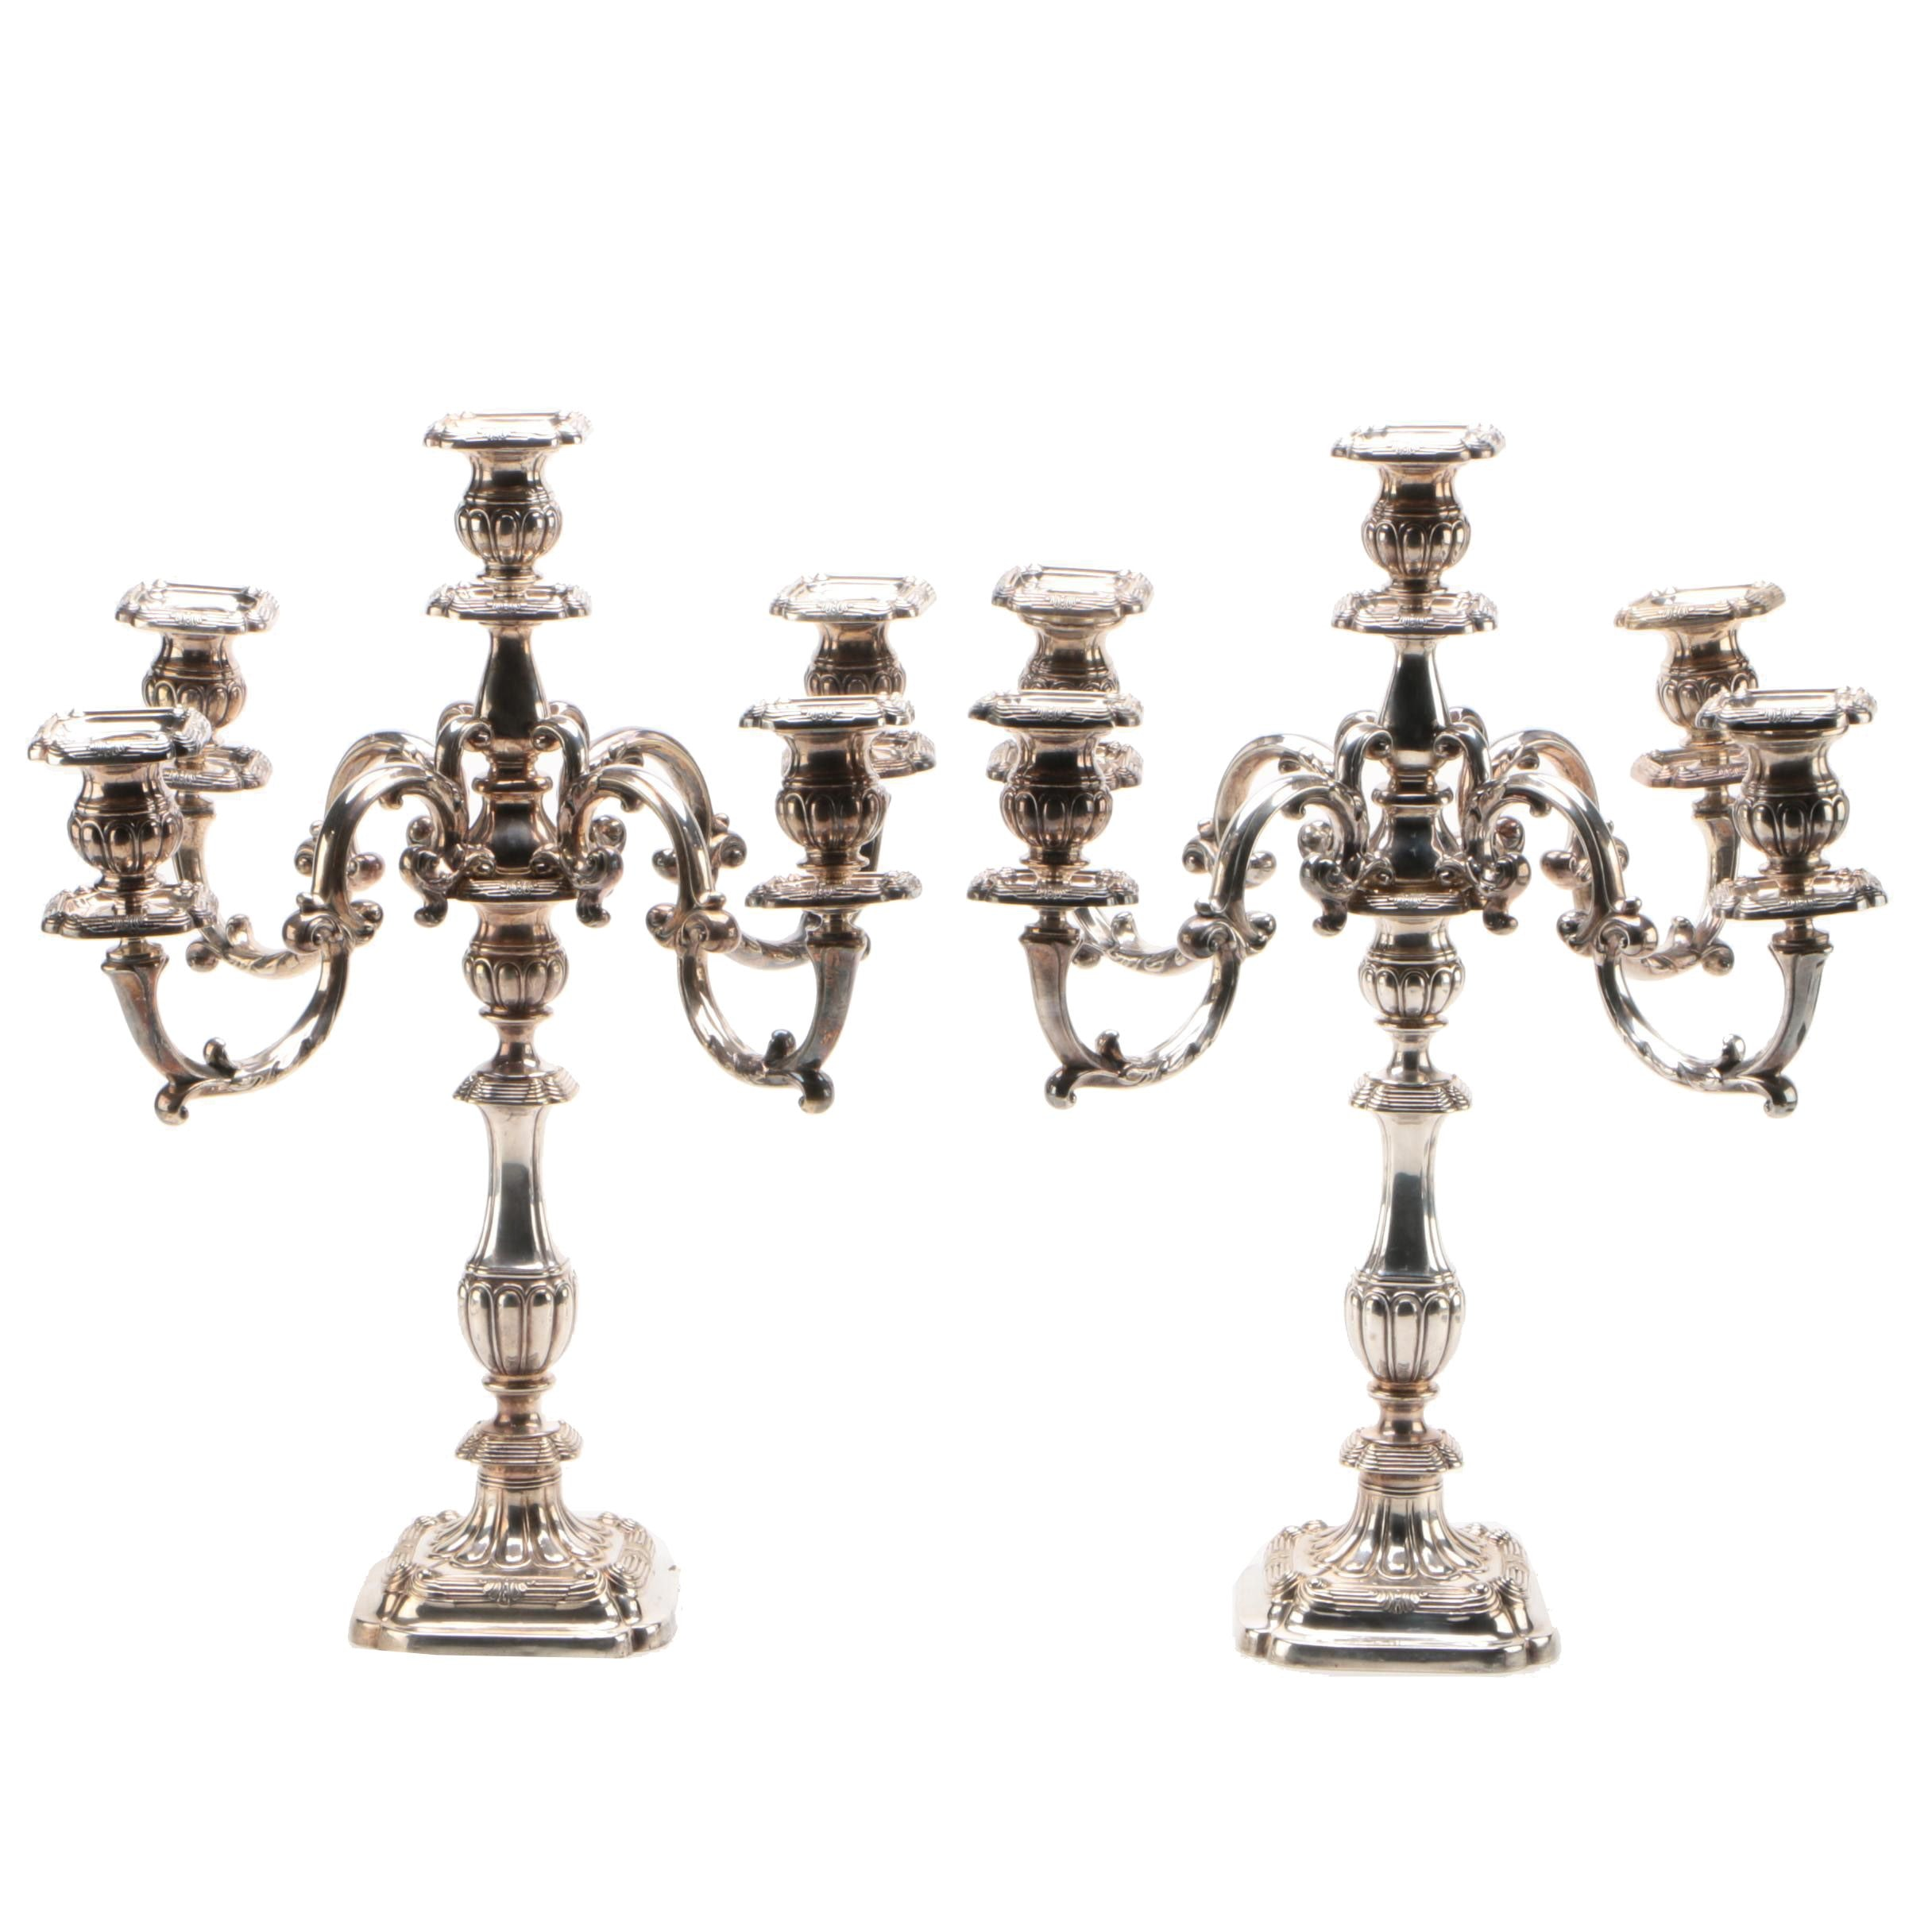 Neoclassical Style Silver Plate Candelabra, Late 19th/Early 20th Century